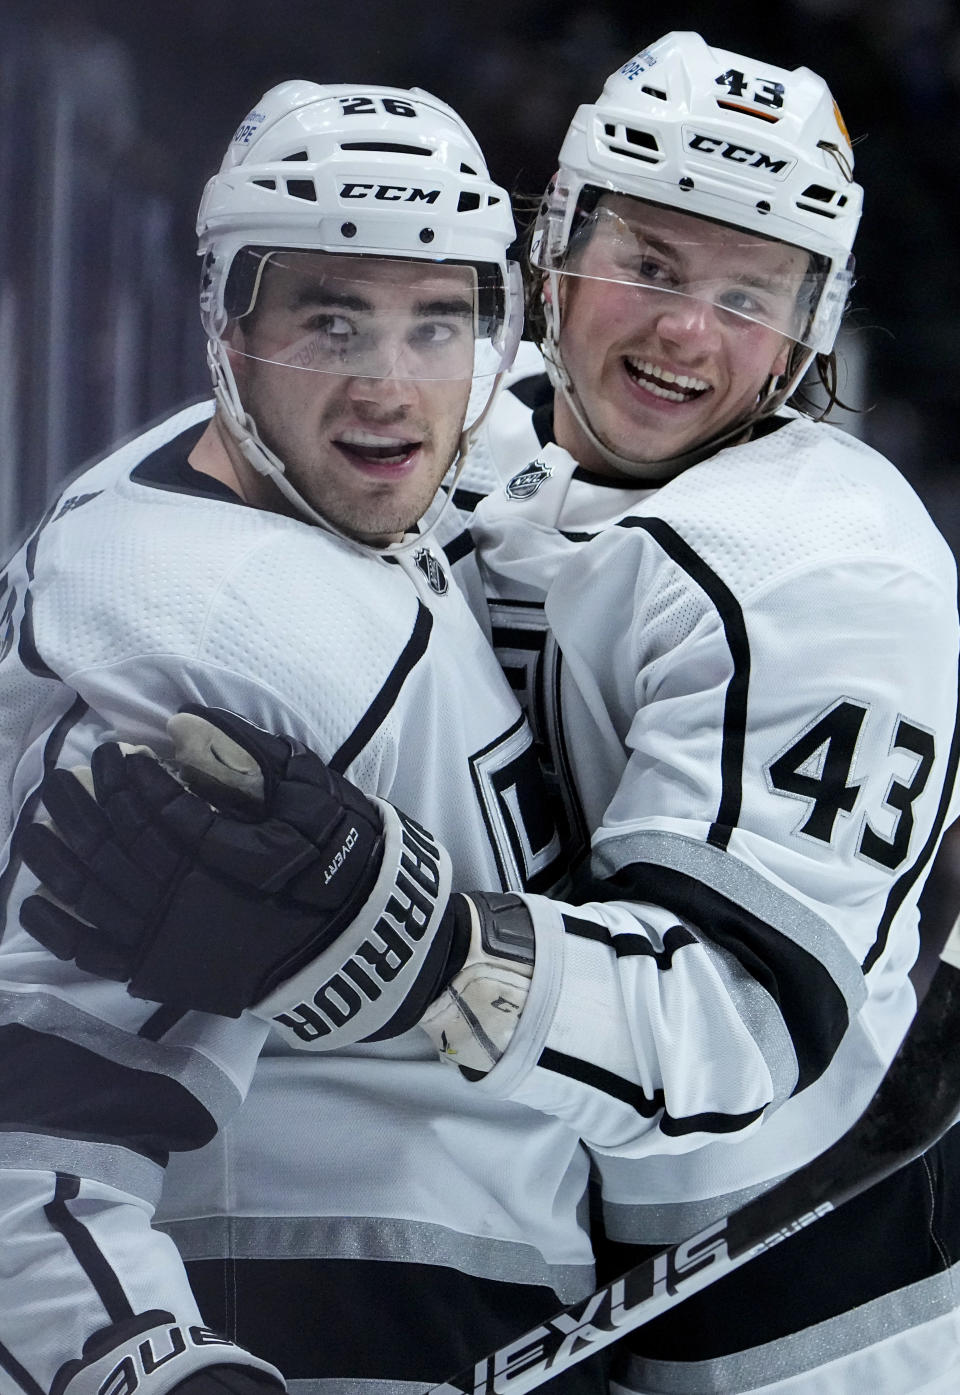 Los Angeles Kings defenseman Sean Walker (26) celebrates a goal with teammate Drake Rymsha (43) against the Colorado Avalanche during the first period of an NHL hockey game Thursday, May, 13, 2021, in Denver. (AP Photo/Jack Dempsey)